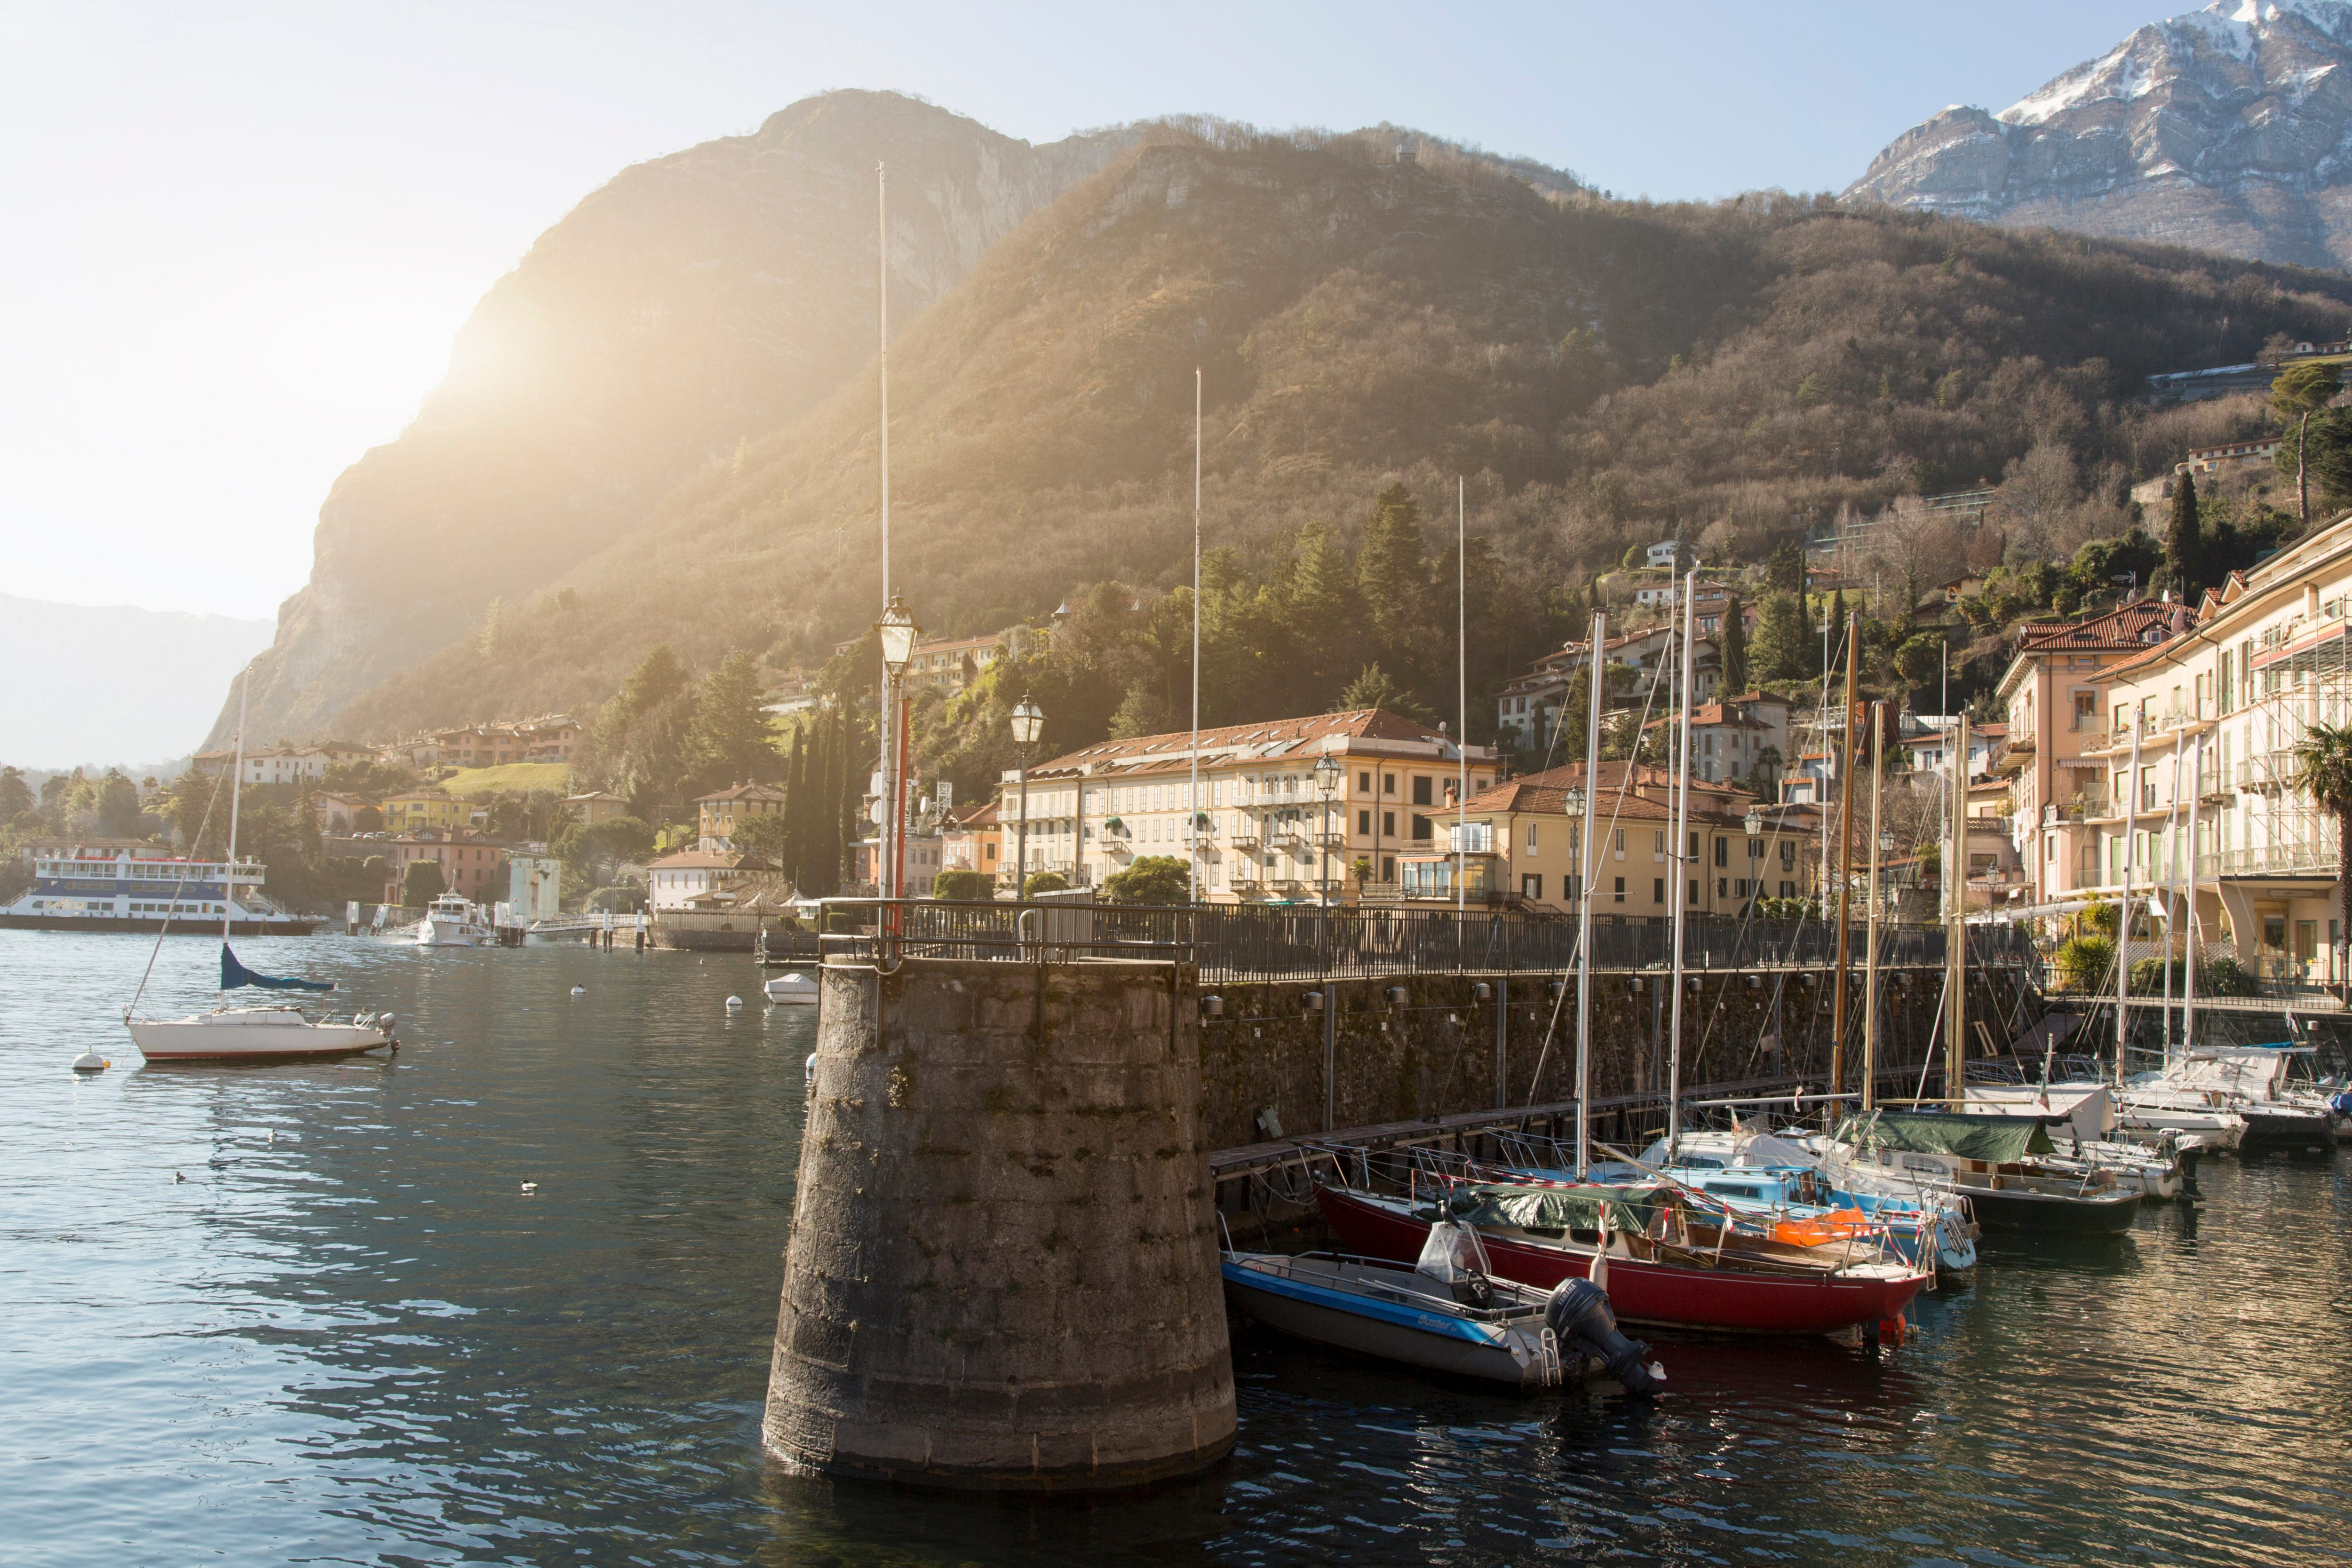 A portside at Lake Como looking from the water, with moored sailing boats and the mountain backdrop